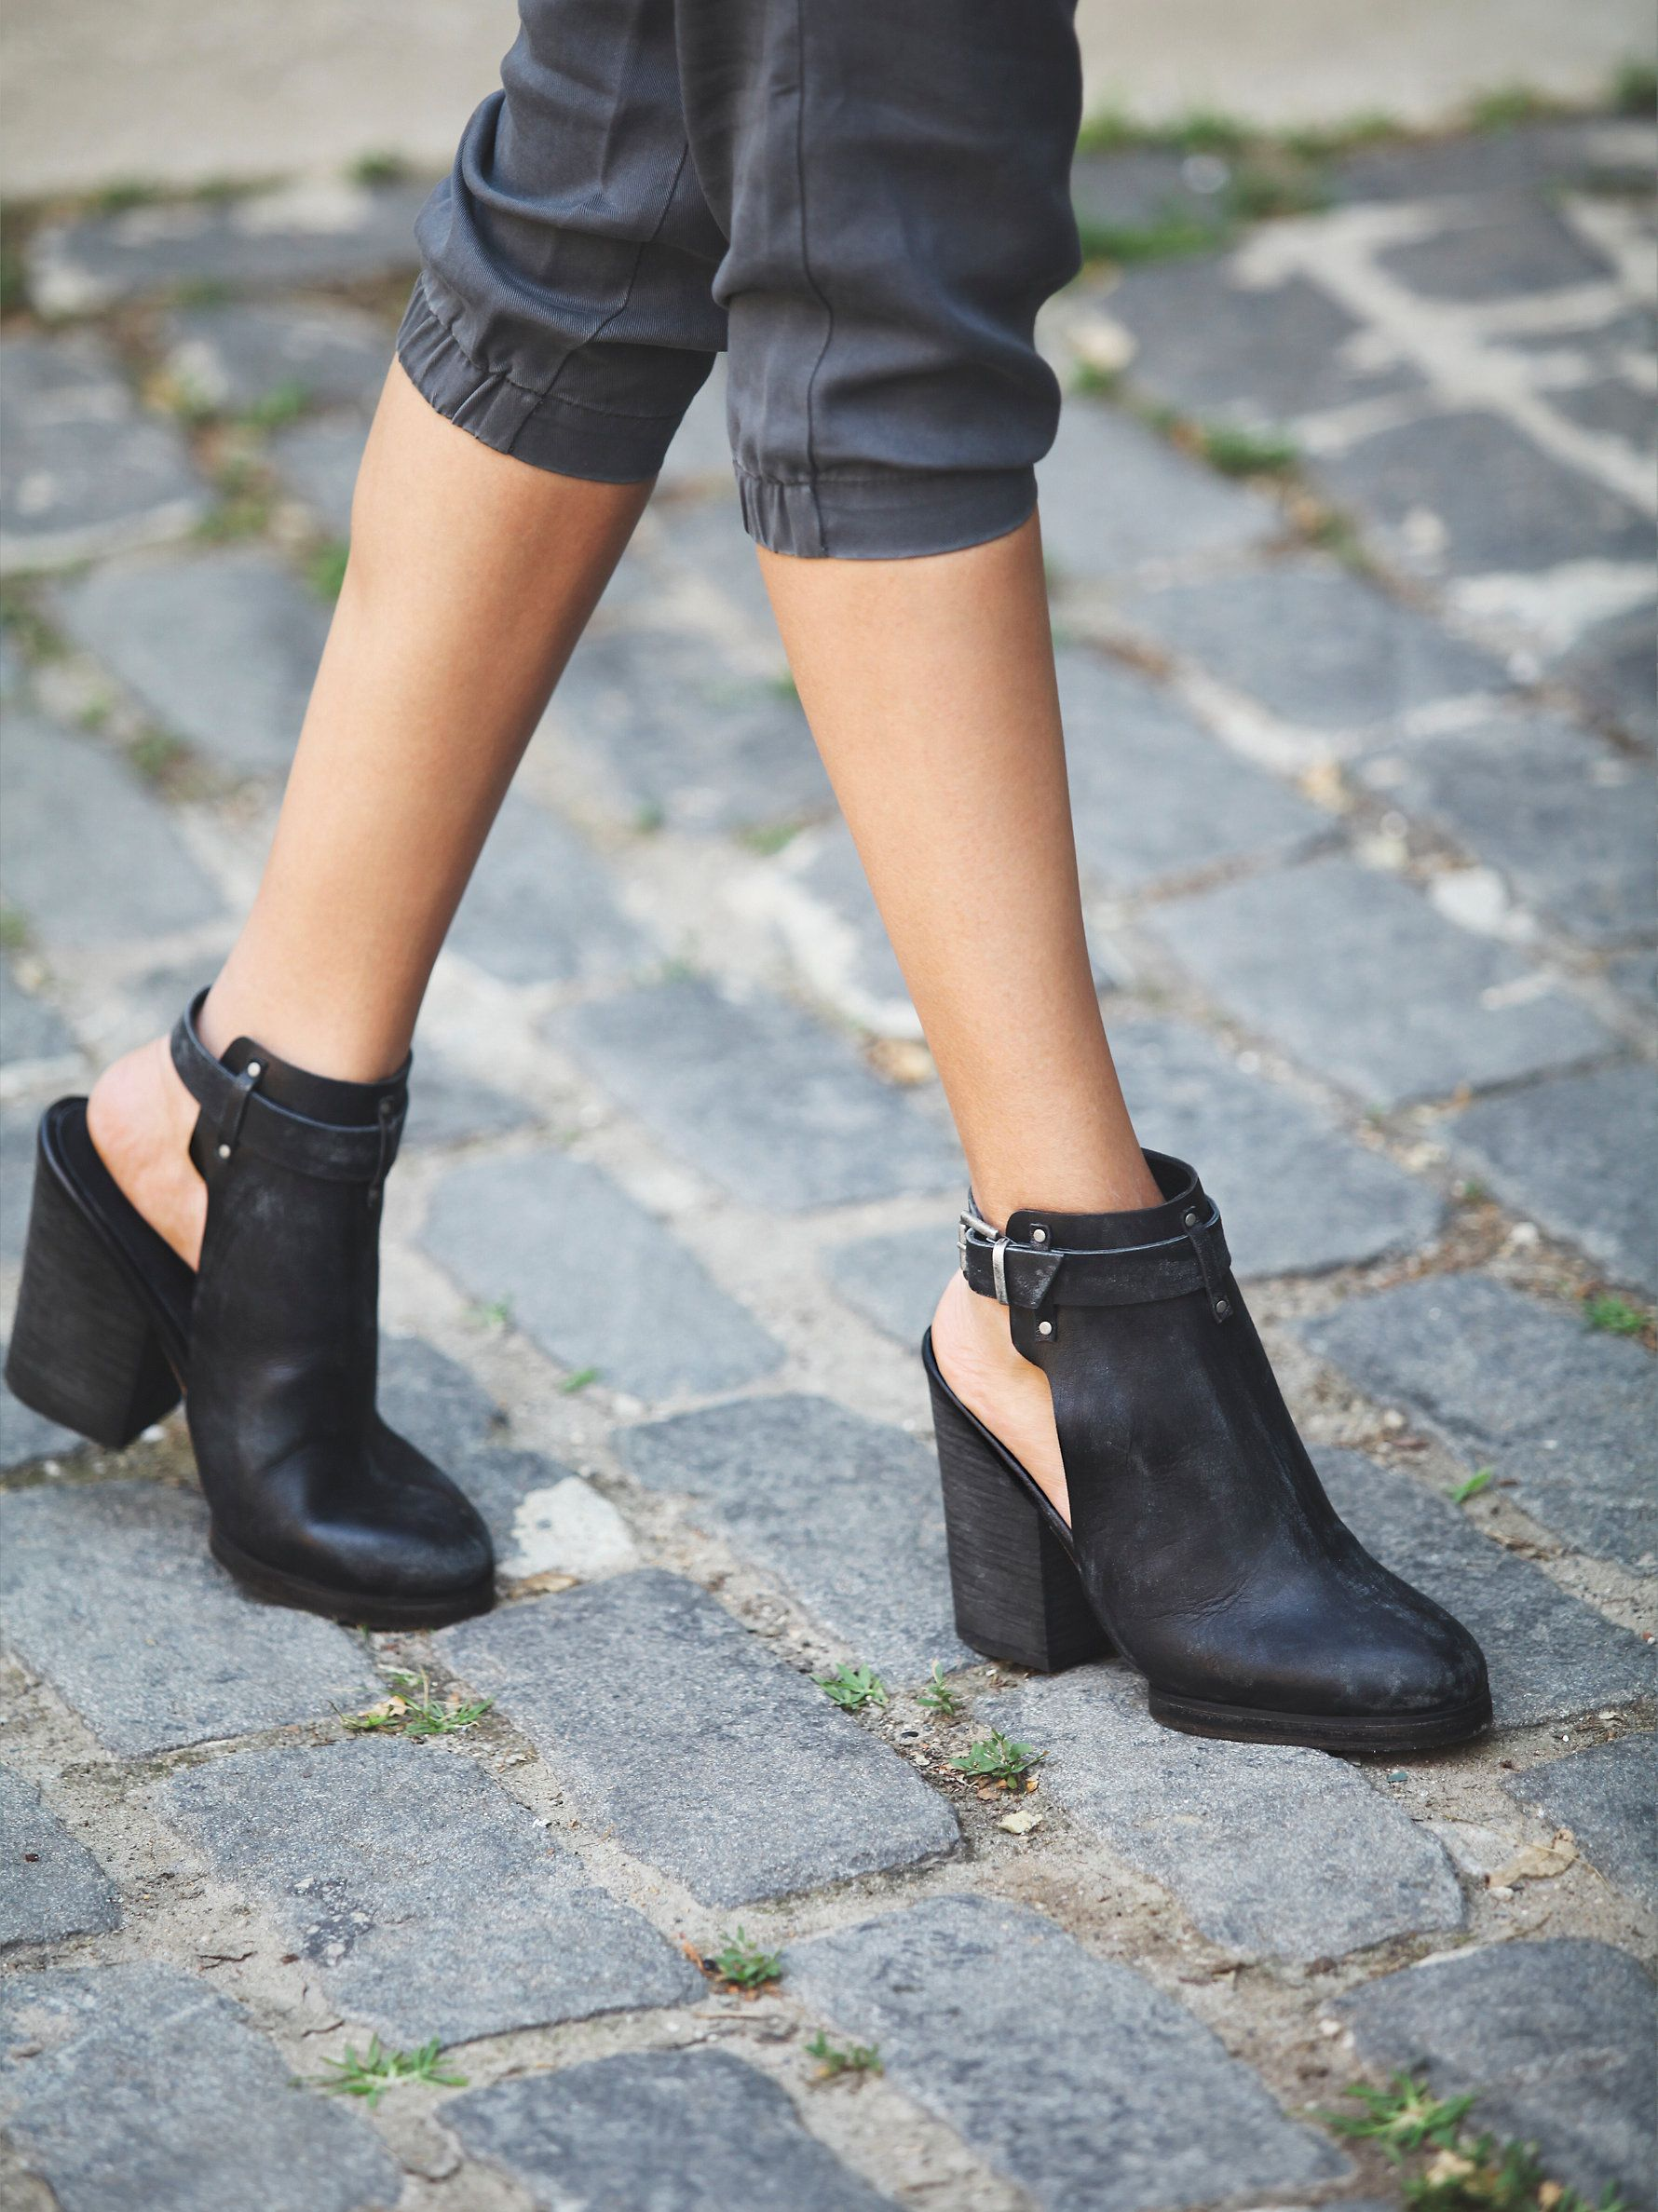 4a653ec9f61aa Distressed leather open back ankle boots with adjustable ankle straps and  chunky stacked heels - free people